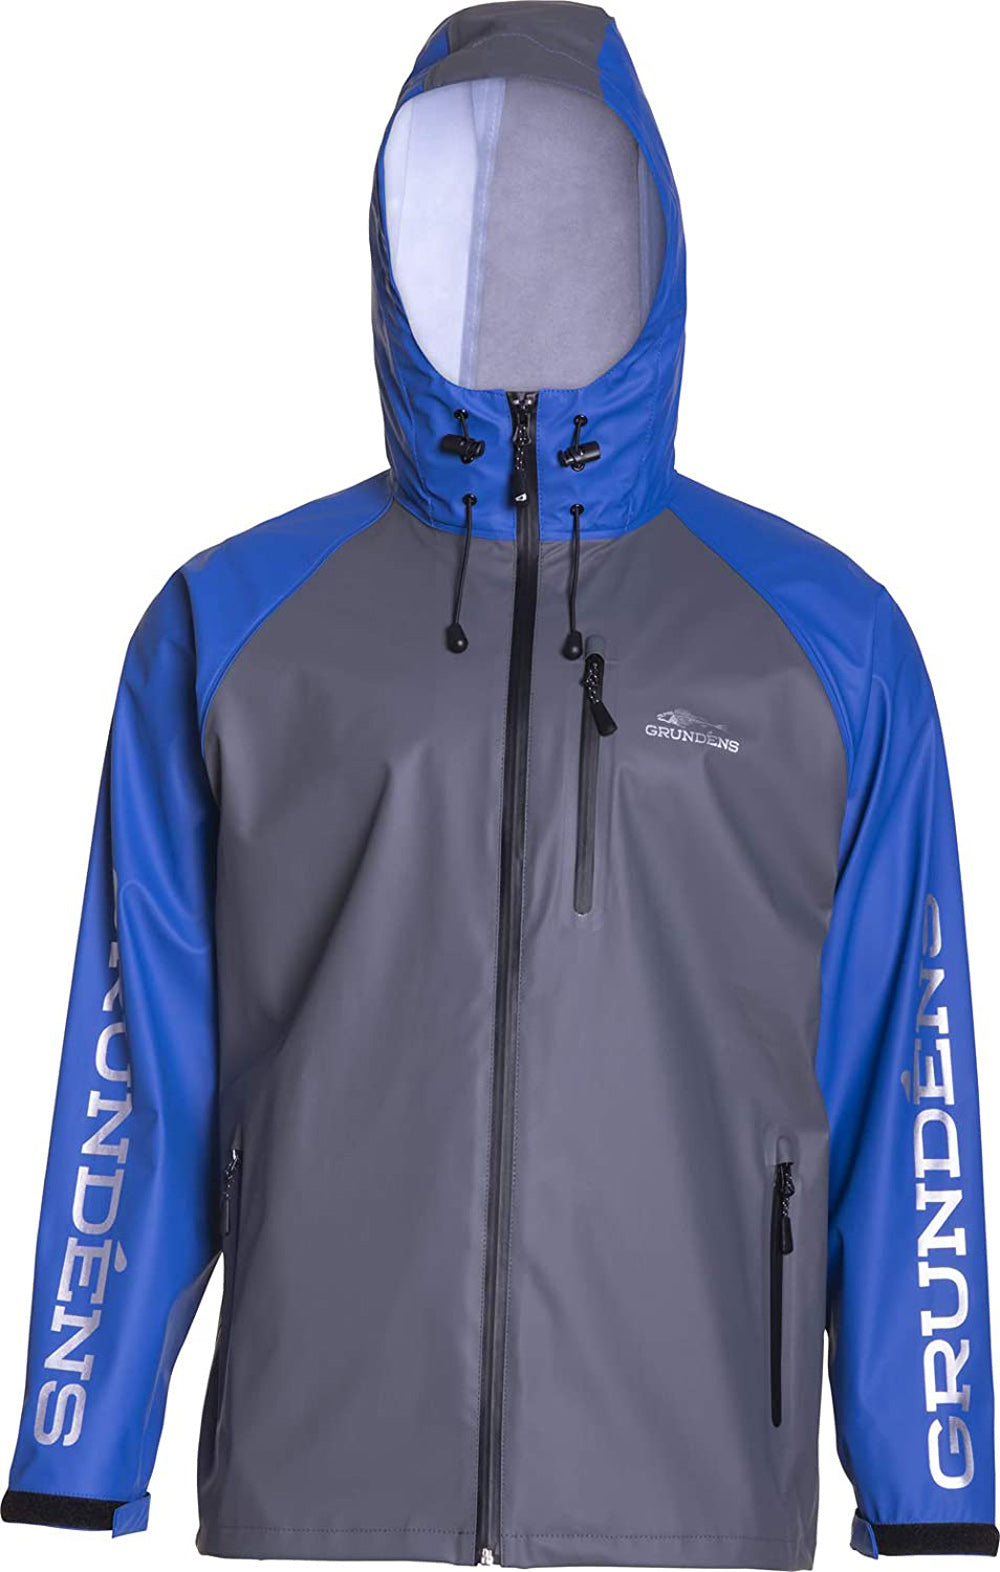 Tourney Jacket in Ocean Blue color from the front view